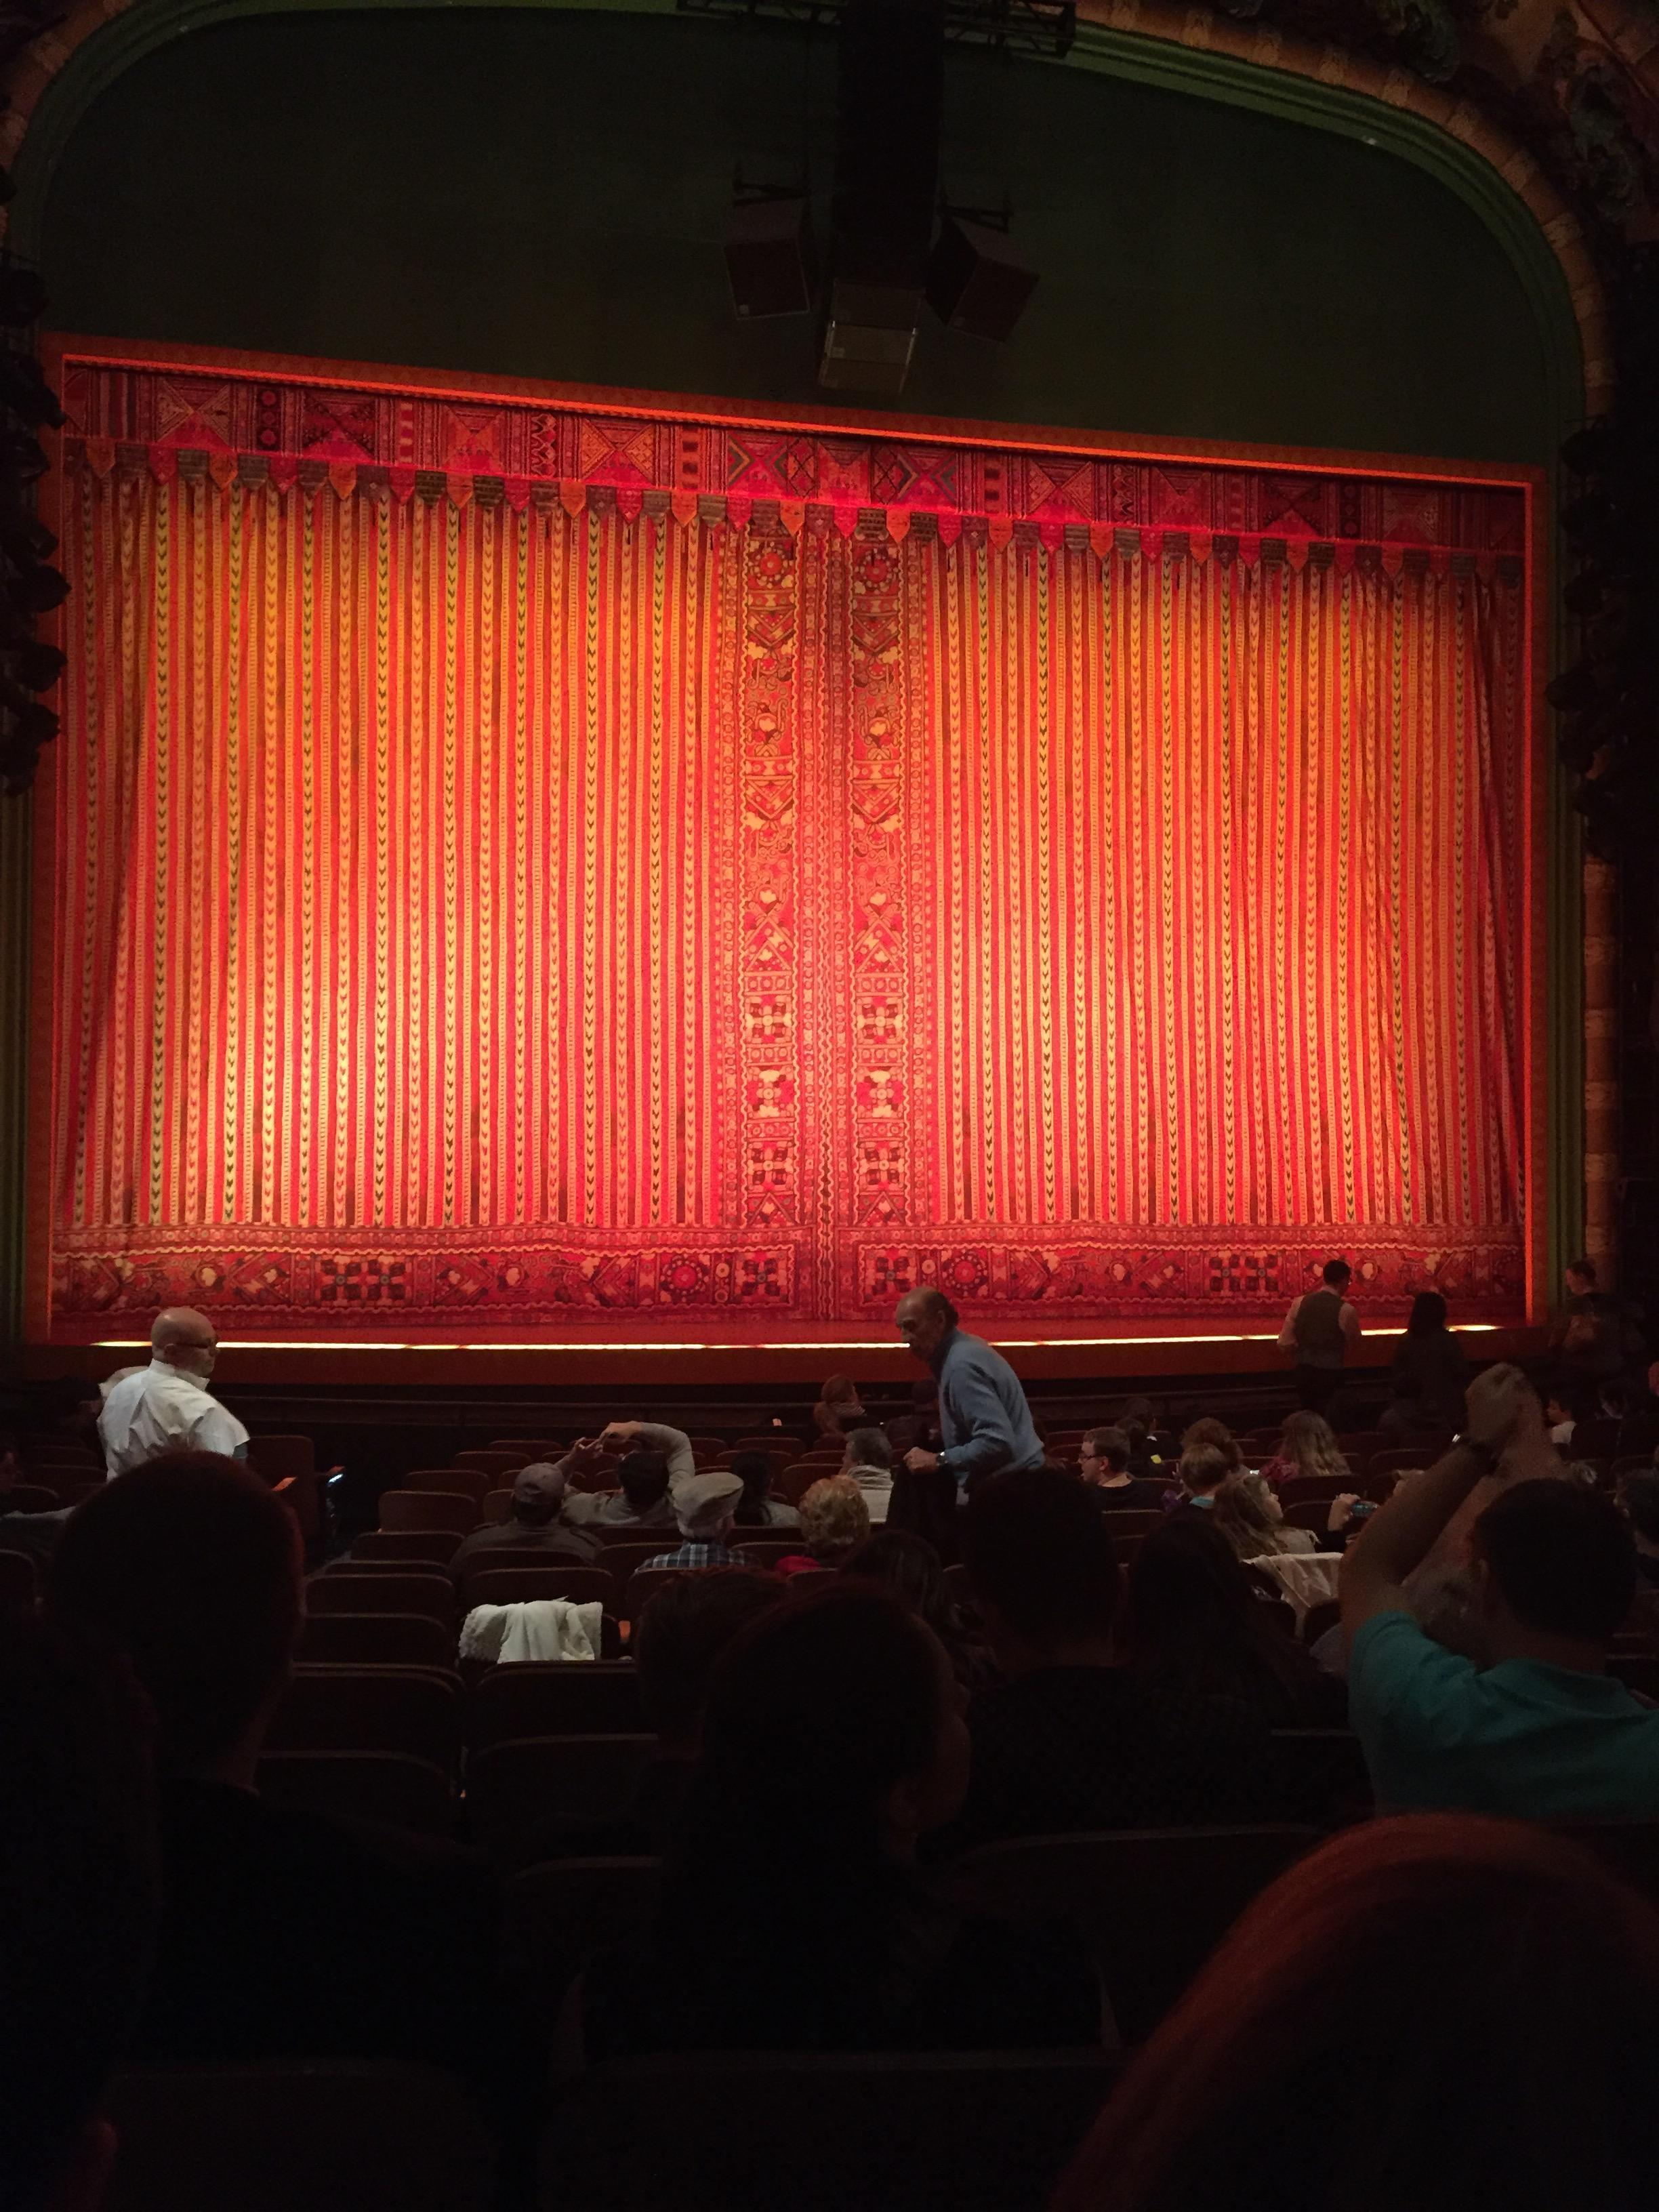 New Amsterdam Theatre Section Orch Row Q Seat 115